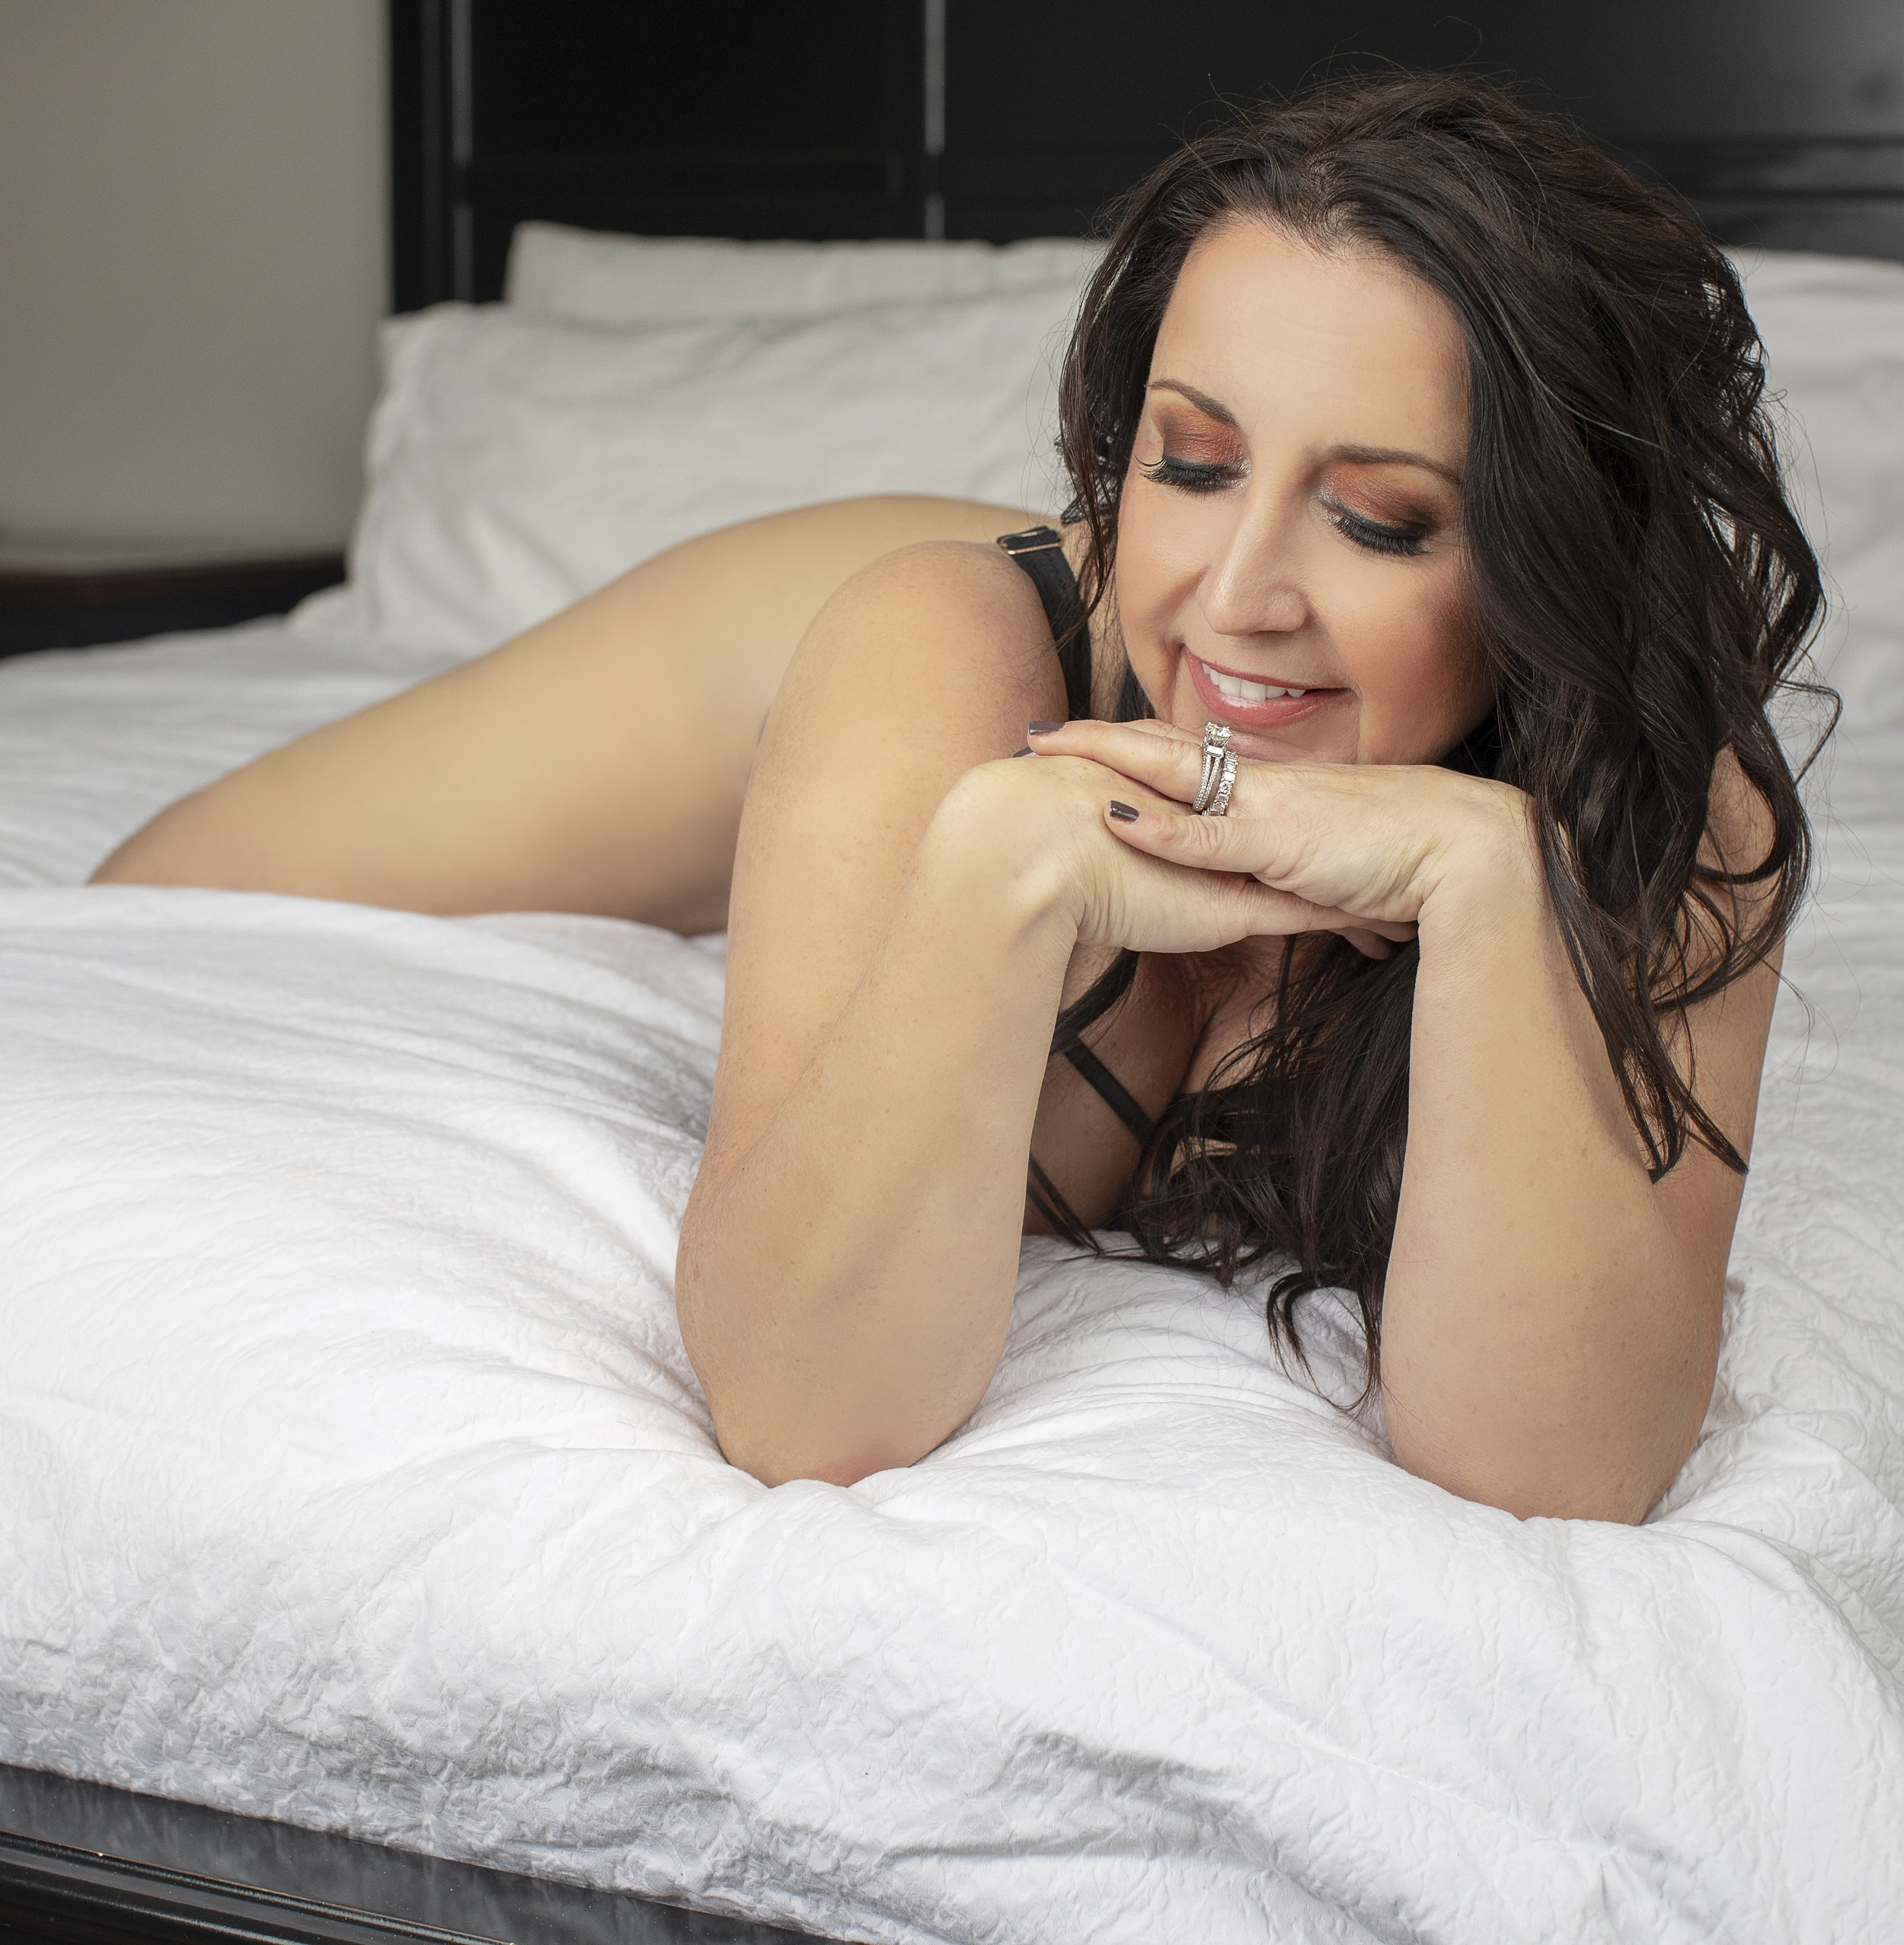 Boudoir style photograph of a smiling woman in black lingerie.